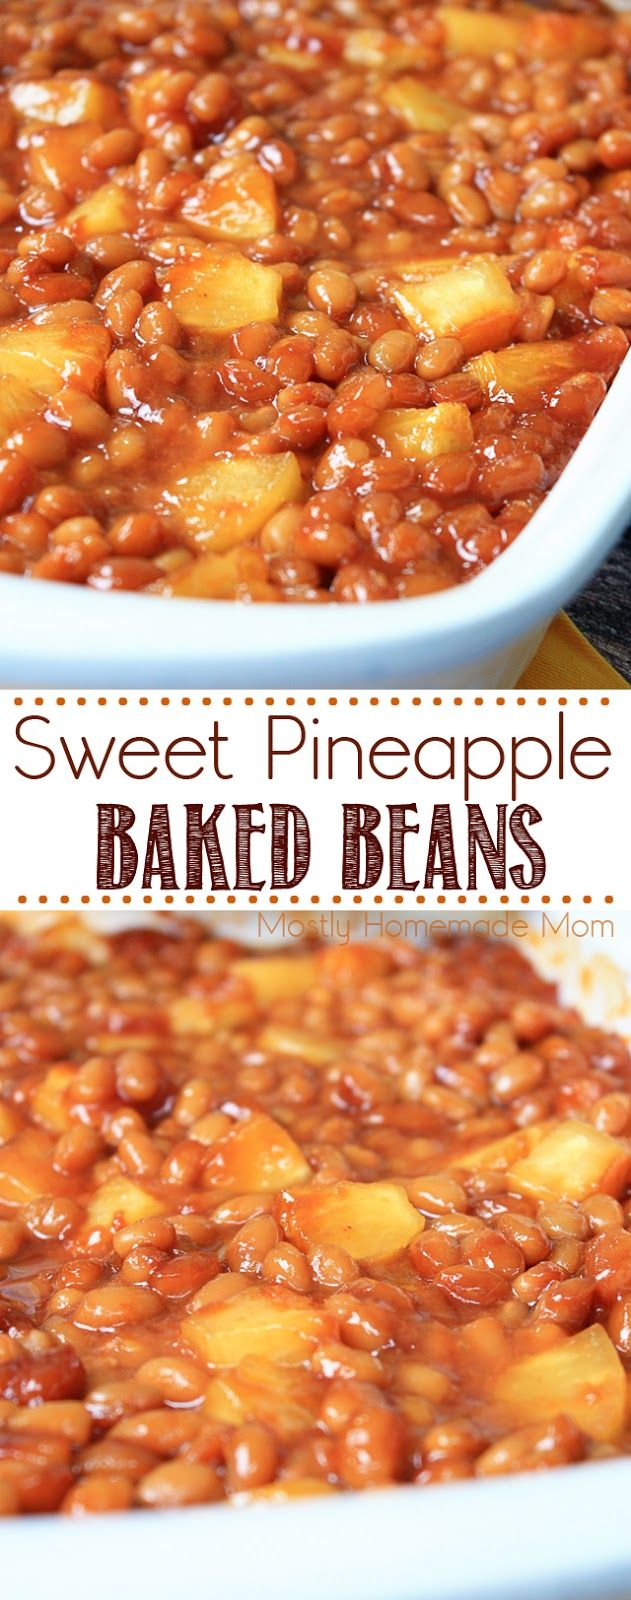 Sweet Pineapple Baked Beans - the perfect side dish! Beans with pineapple chunks, pineapple juice, and brown sugar - great for potlucks and BBQs!